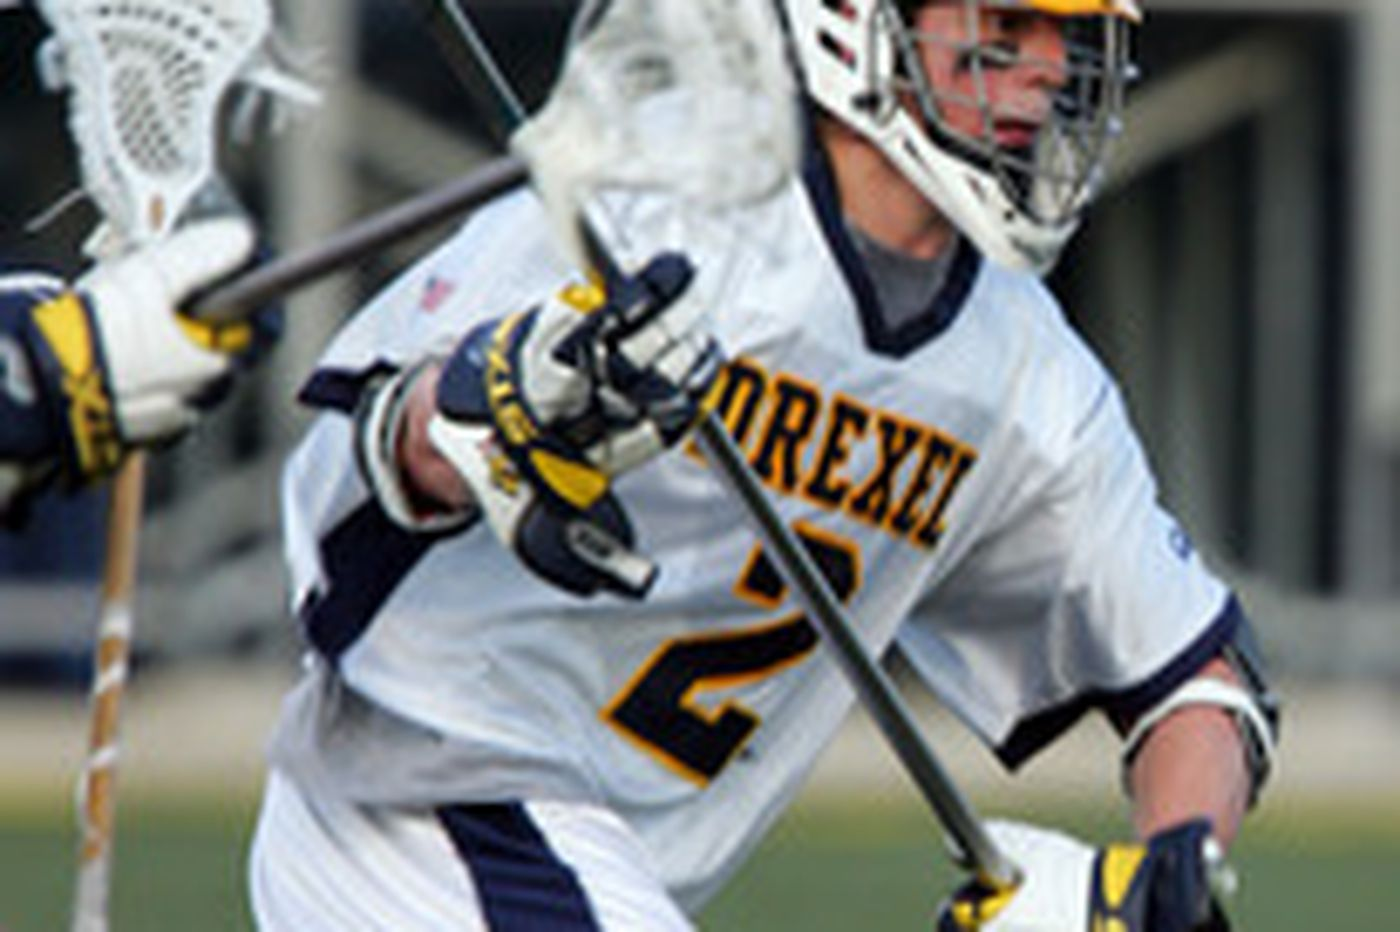 Drexel makes lacrosse a gritty city game